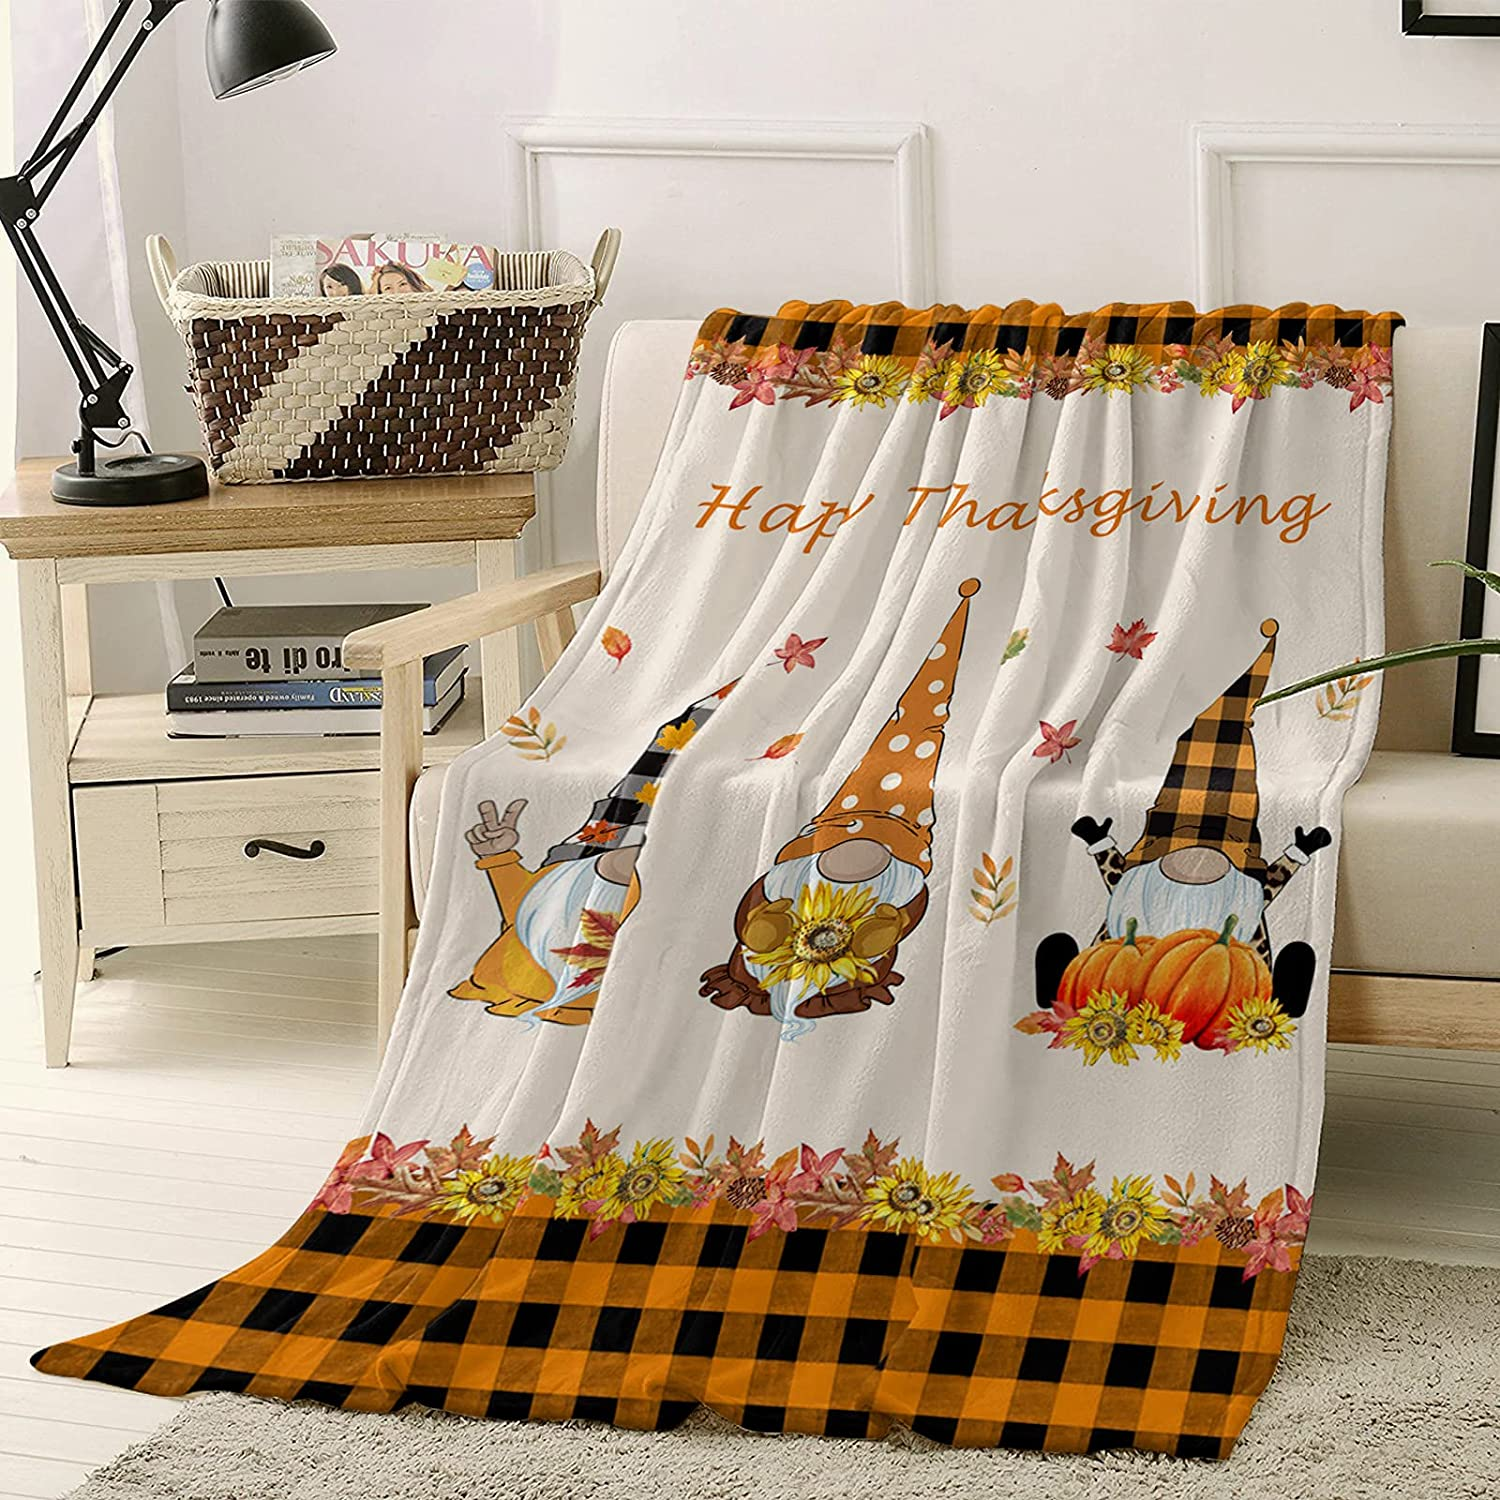 Fuzzy Throw Blanket Grid 40 x 50 Blankets Max Super sale 45% OFF inch for A Bed Fleece